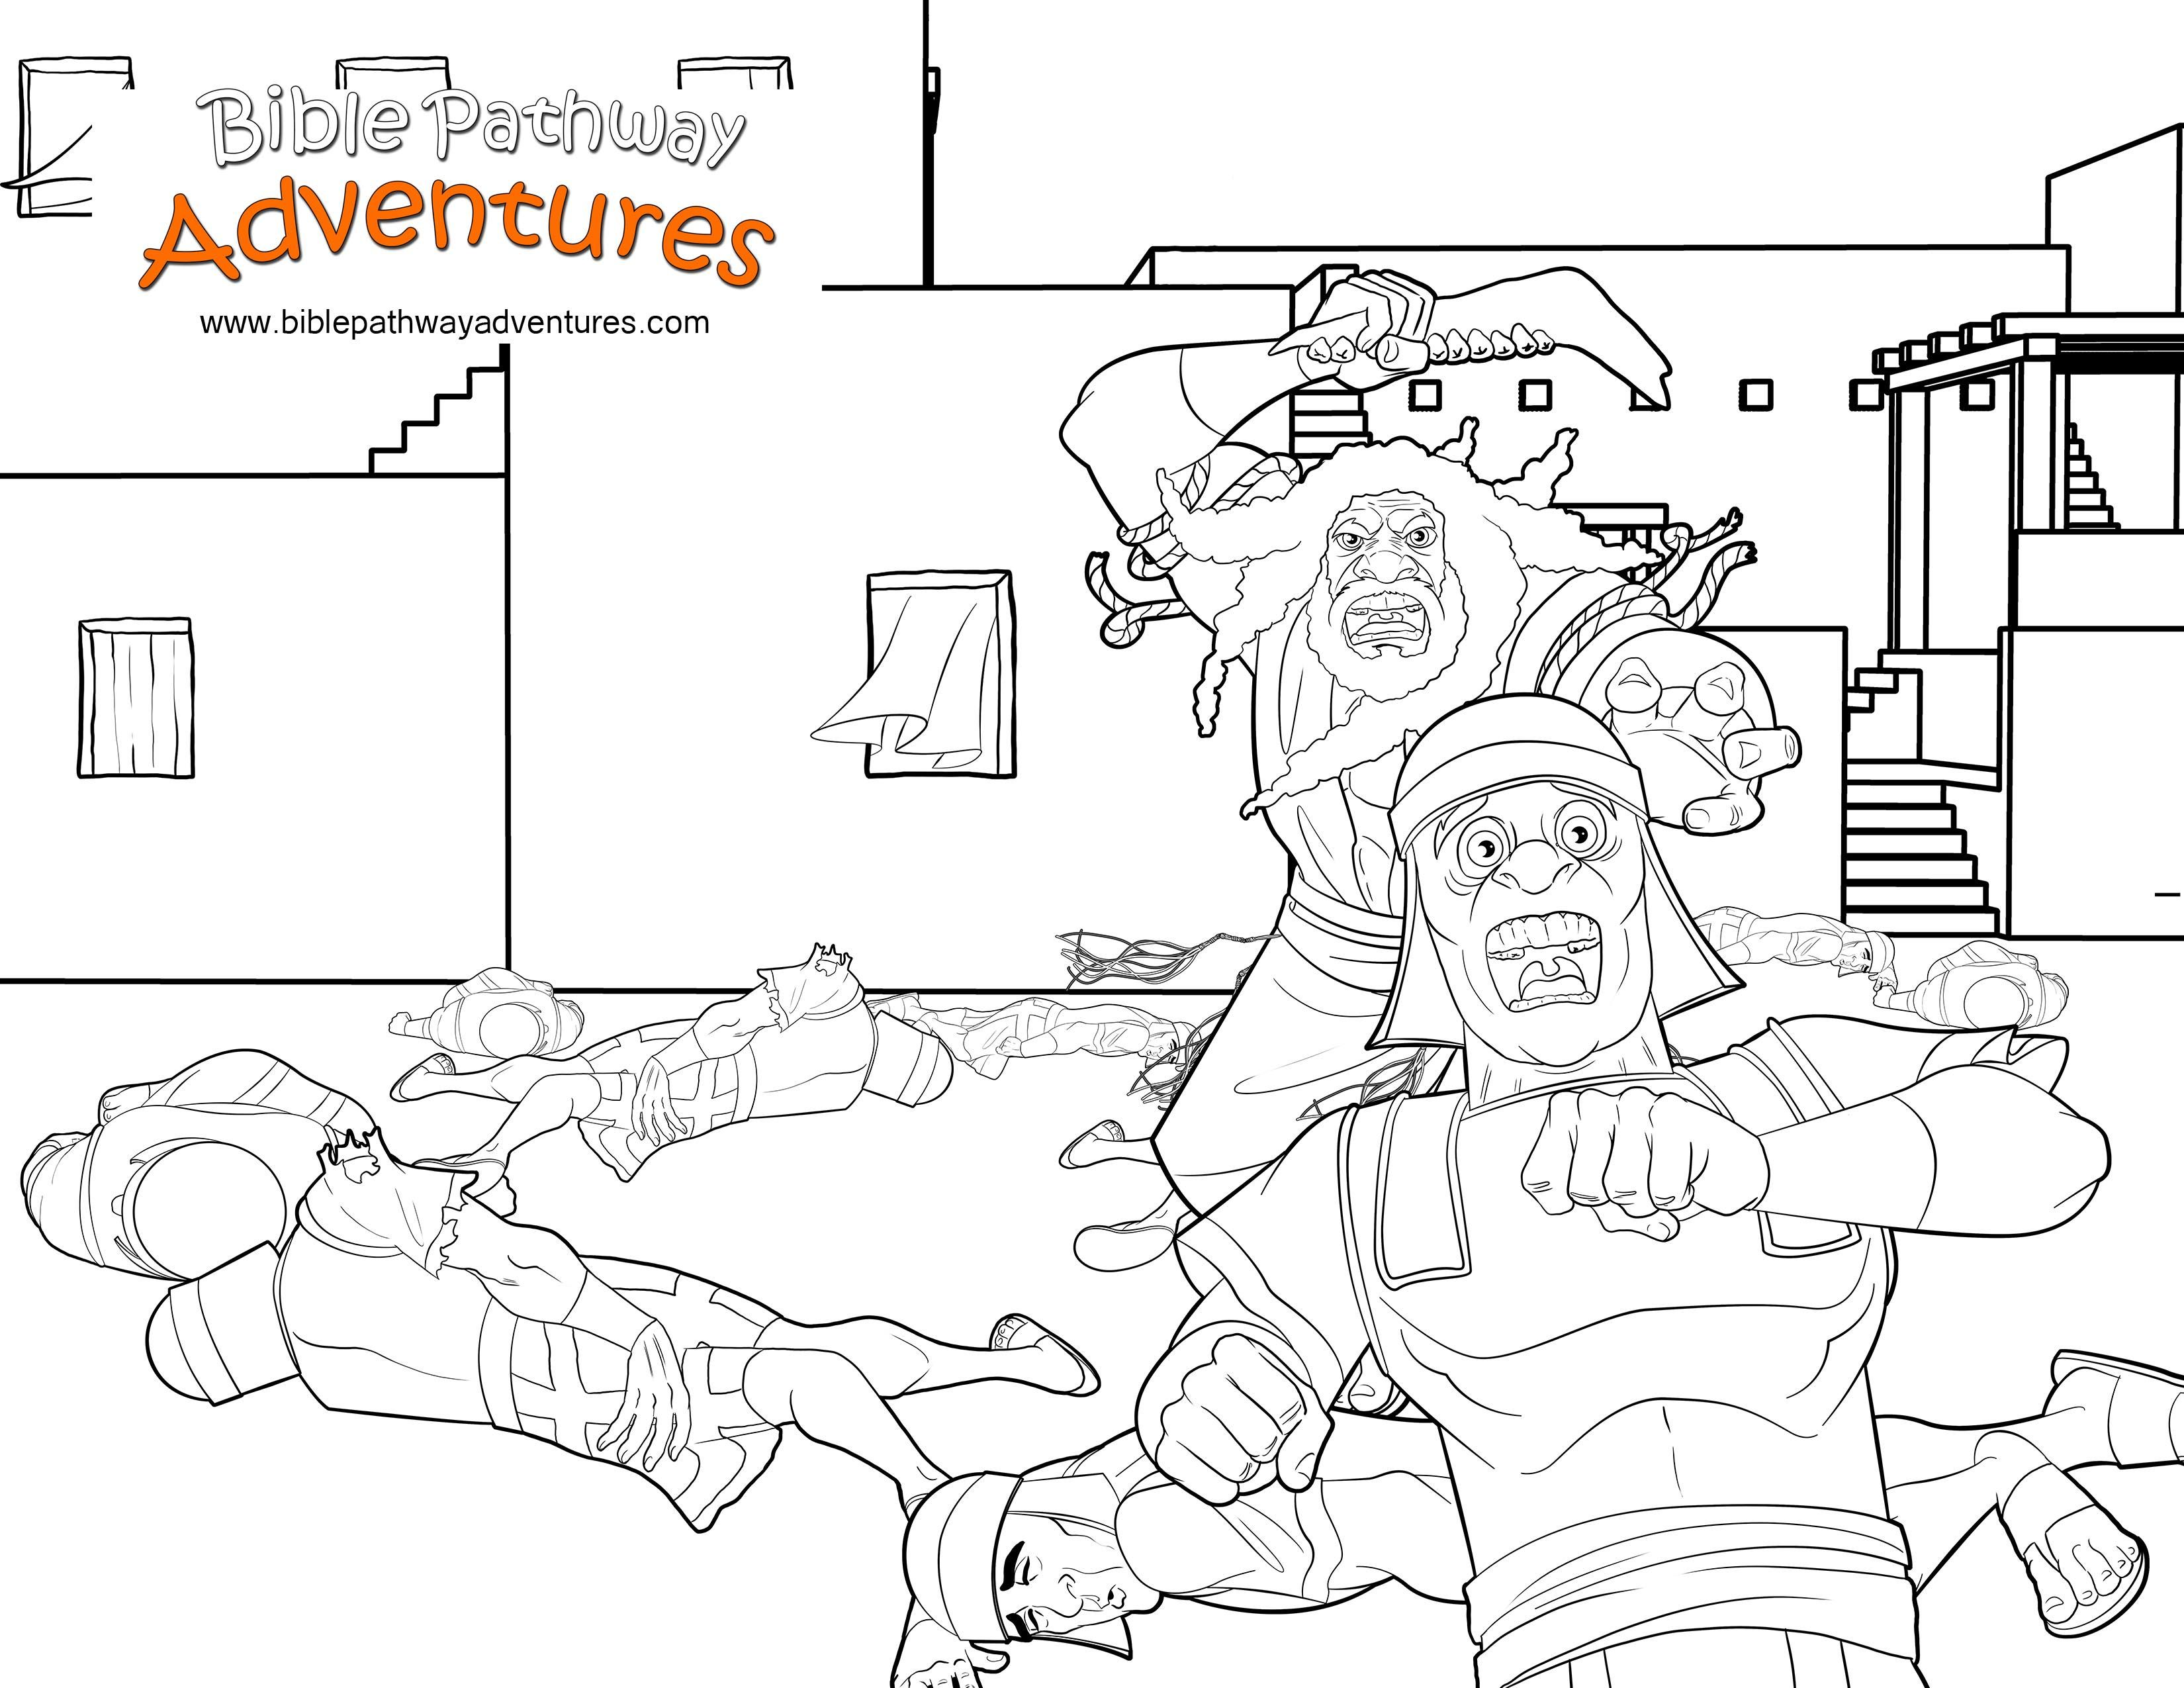 Bible Coloring Page: Samson defeats the Philistines | Sunday school